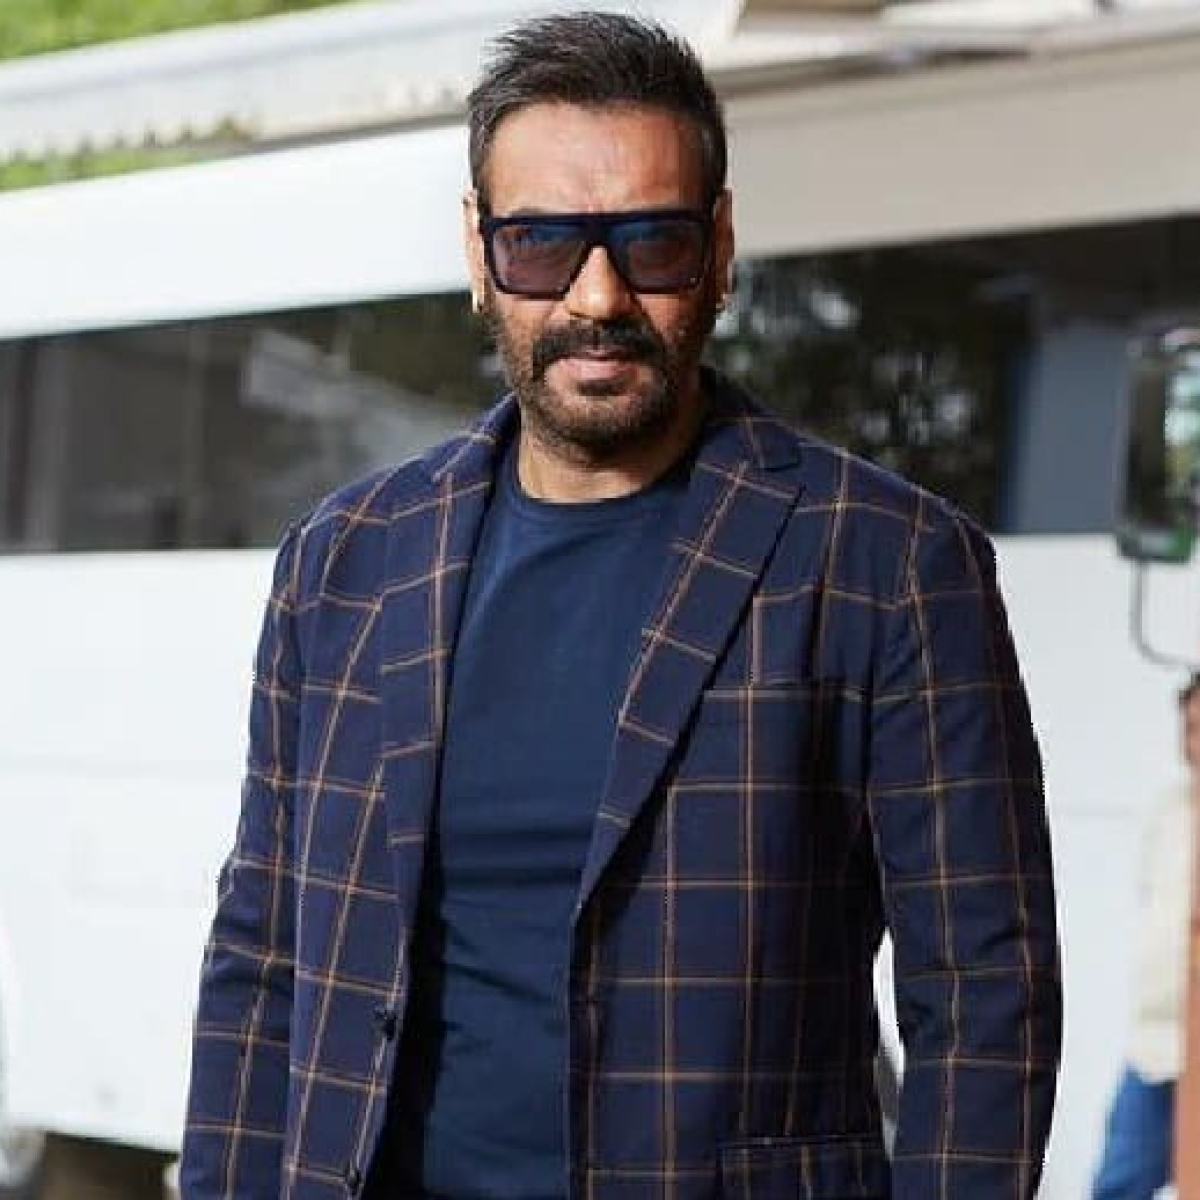 Mumbai man who stopped Ajay Devgn's car over his tweet on farmers' protest released on bail